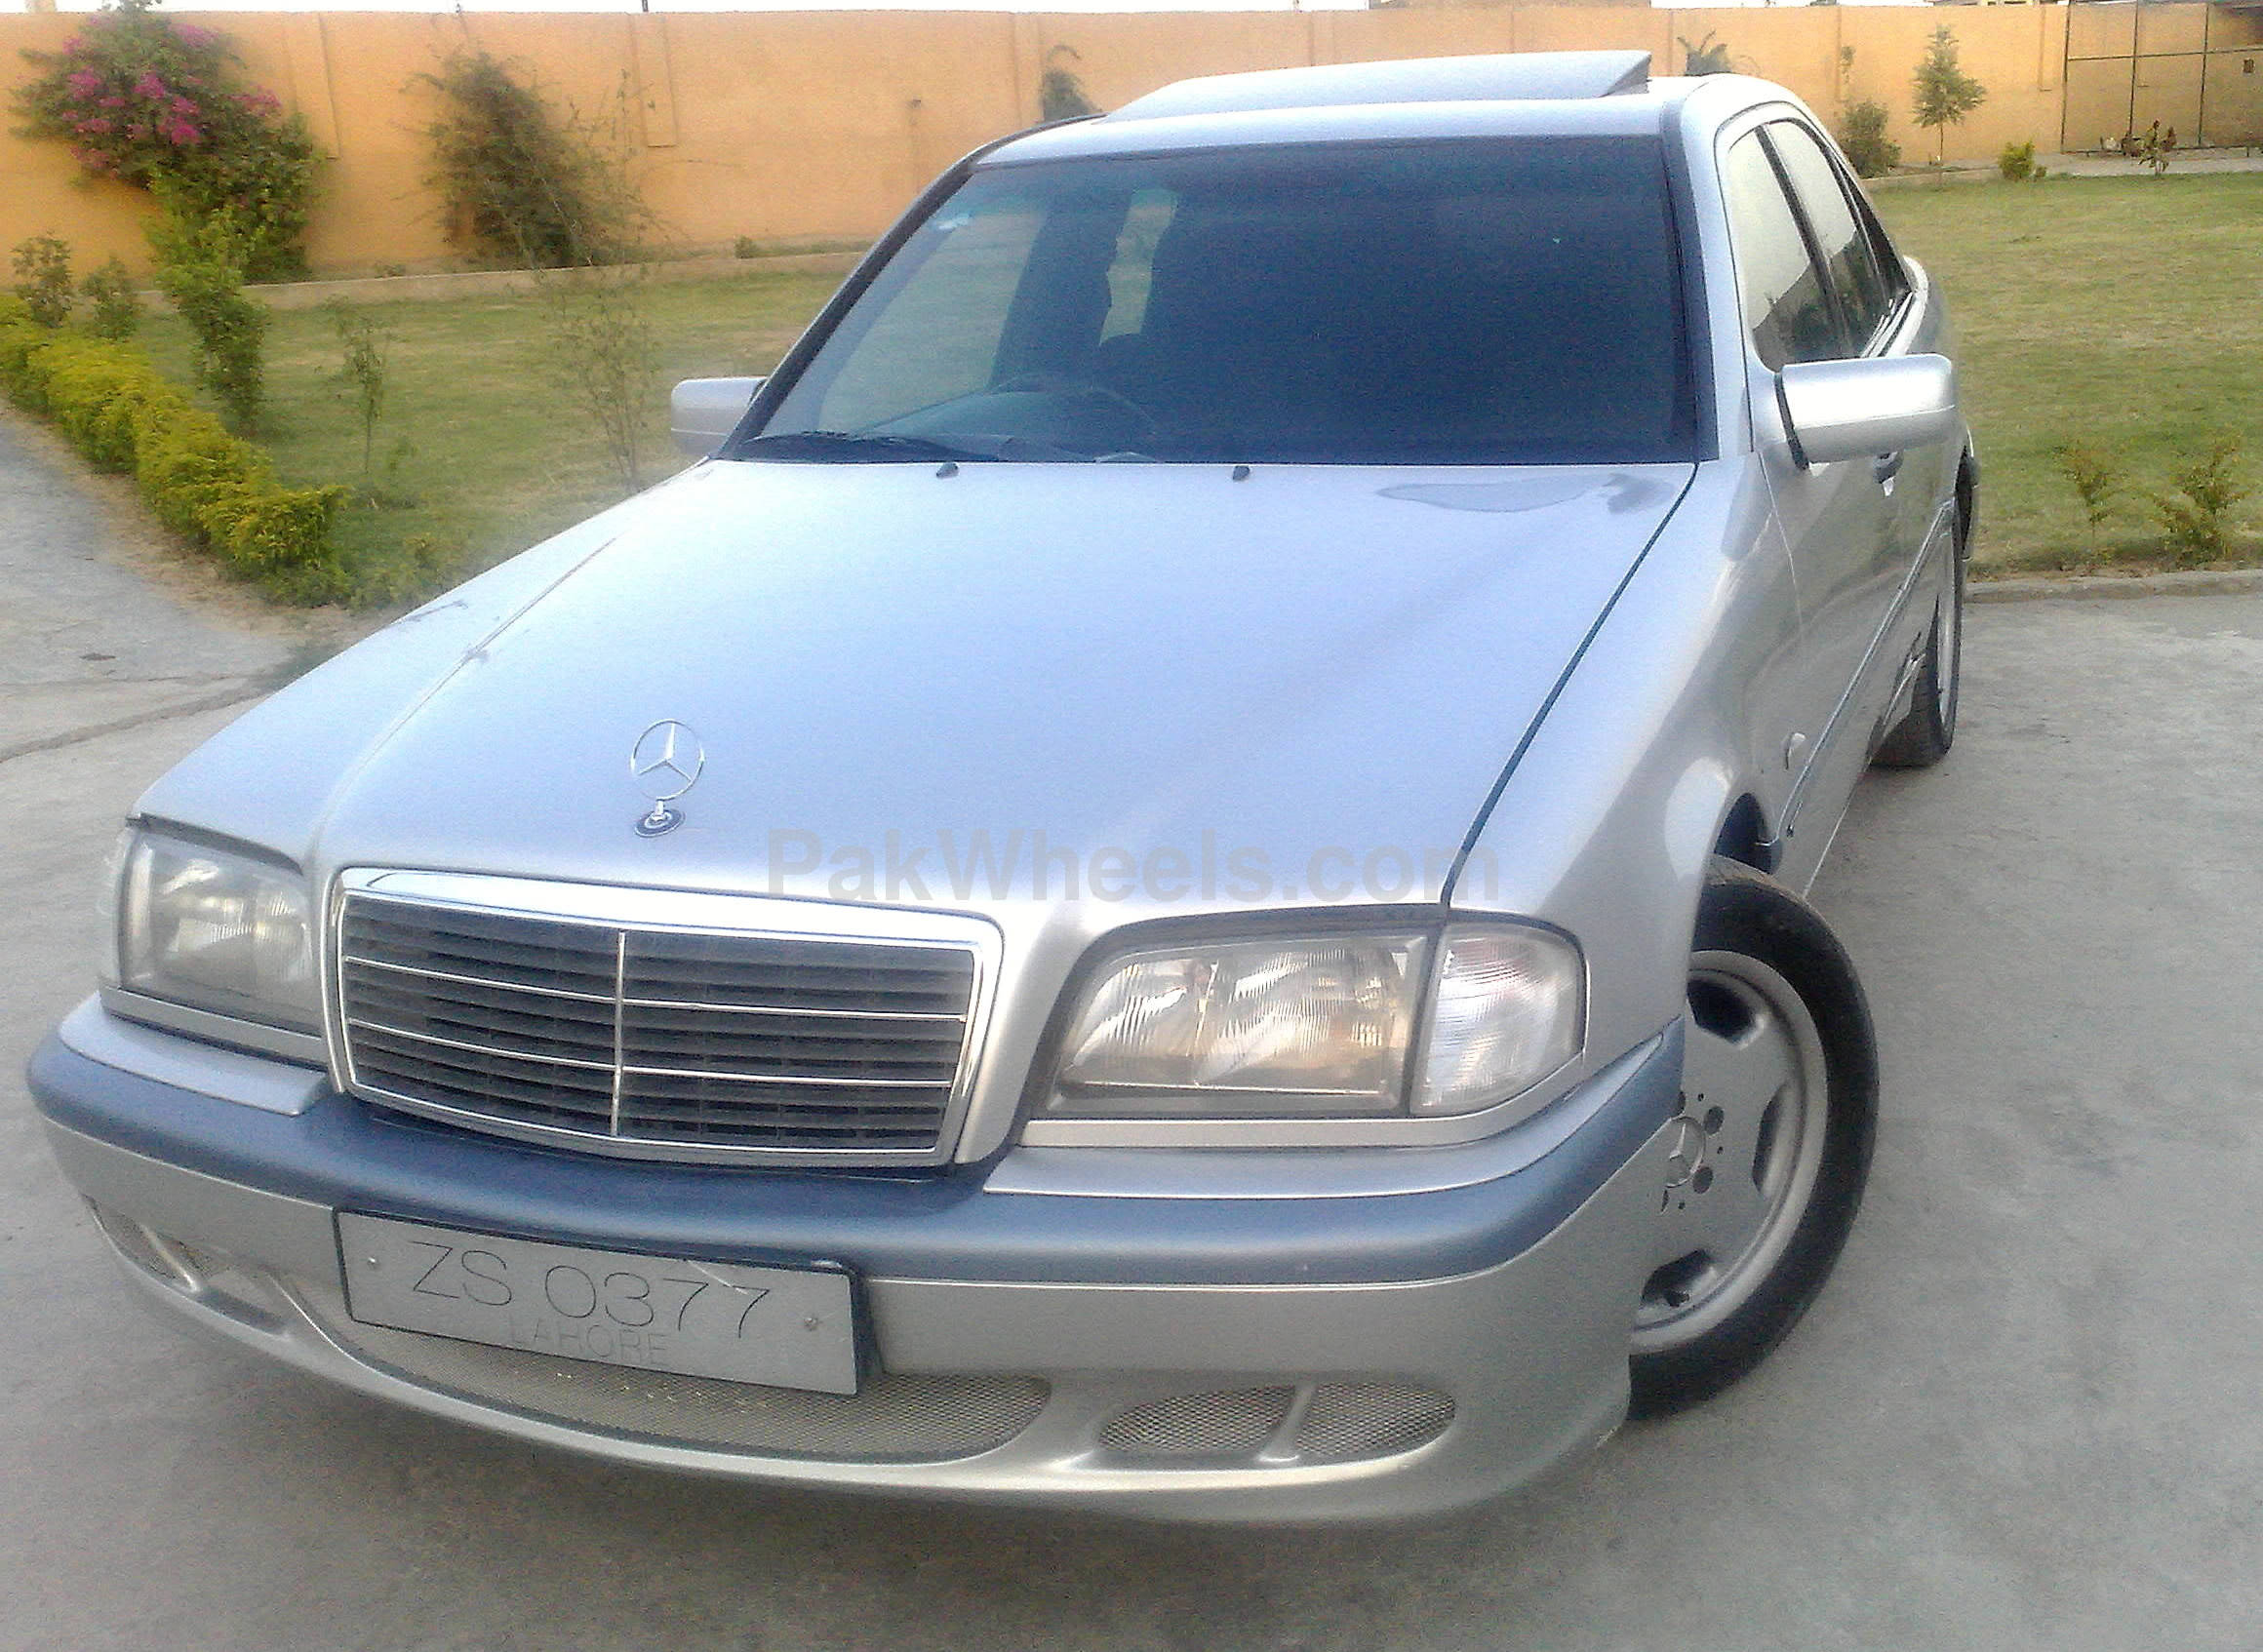 Mercedes benz c class 1998 of sagistranger member ride for Mercedes benz membership